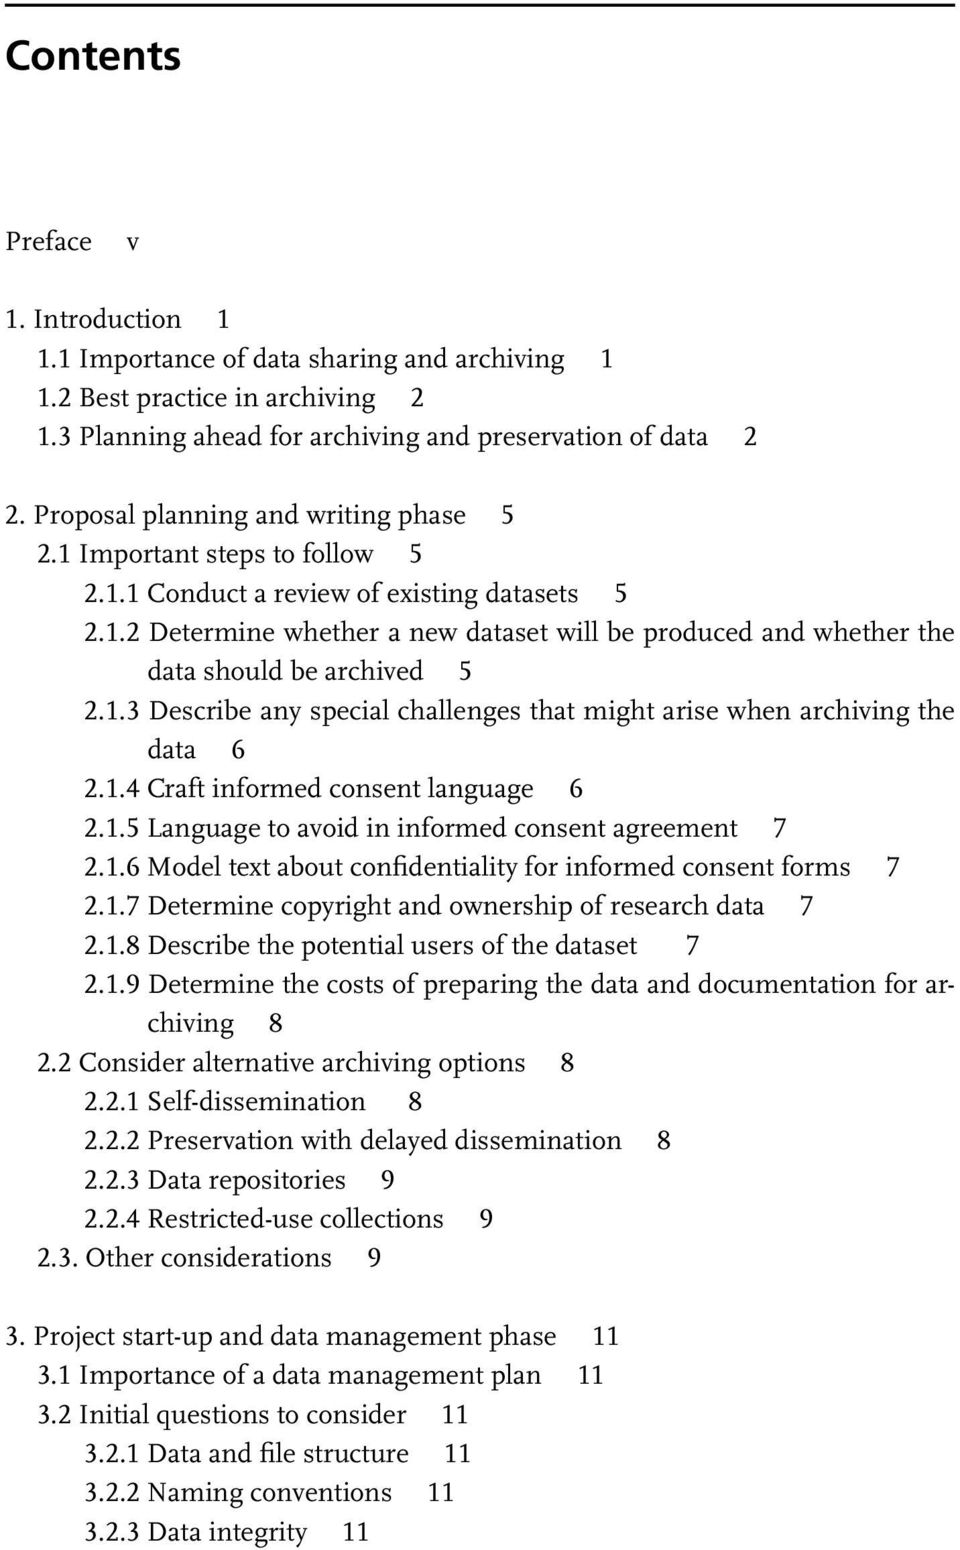 1.3 Describe any special challenges that might arise when archiving the data 6 2.1.4 Craft informed consent language 6 2.1.5 Language to avoid in informed consent agreement 7 2.1.6 Model text about confidentiality for informed consent forms 7 2.